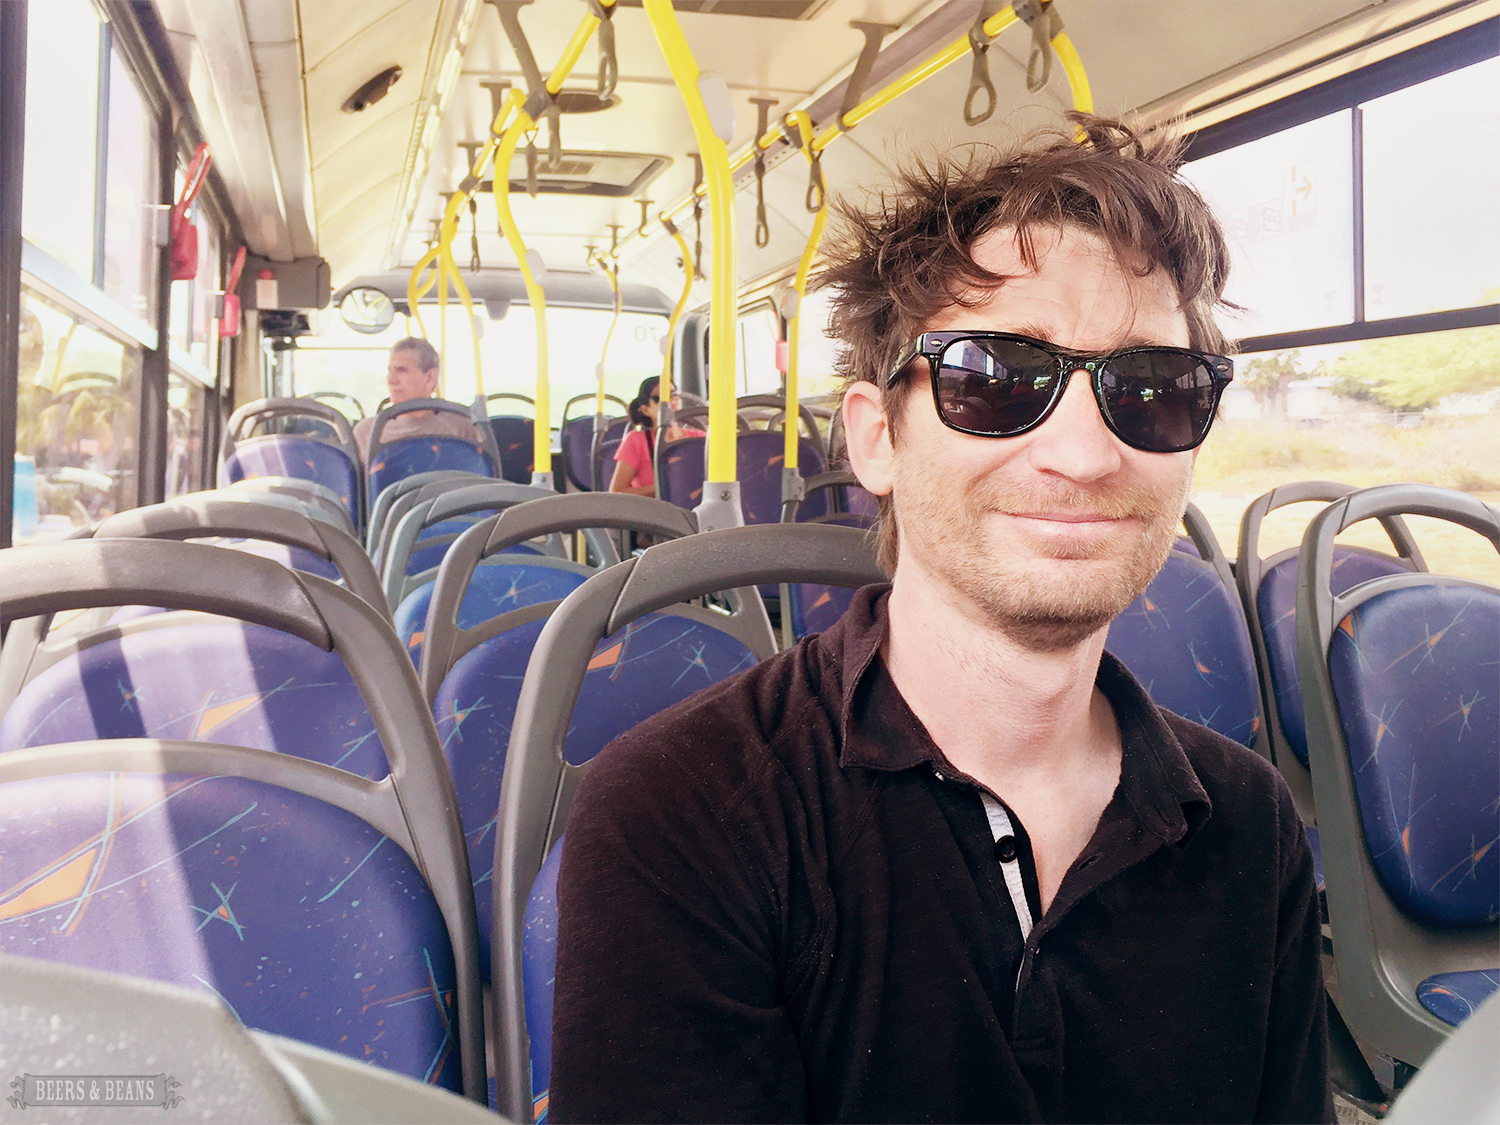 Randy Kalp, co-creator of the travel scarf, riding the public bus to the beach in Aruba.